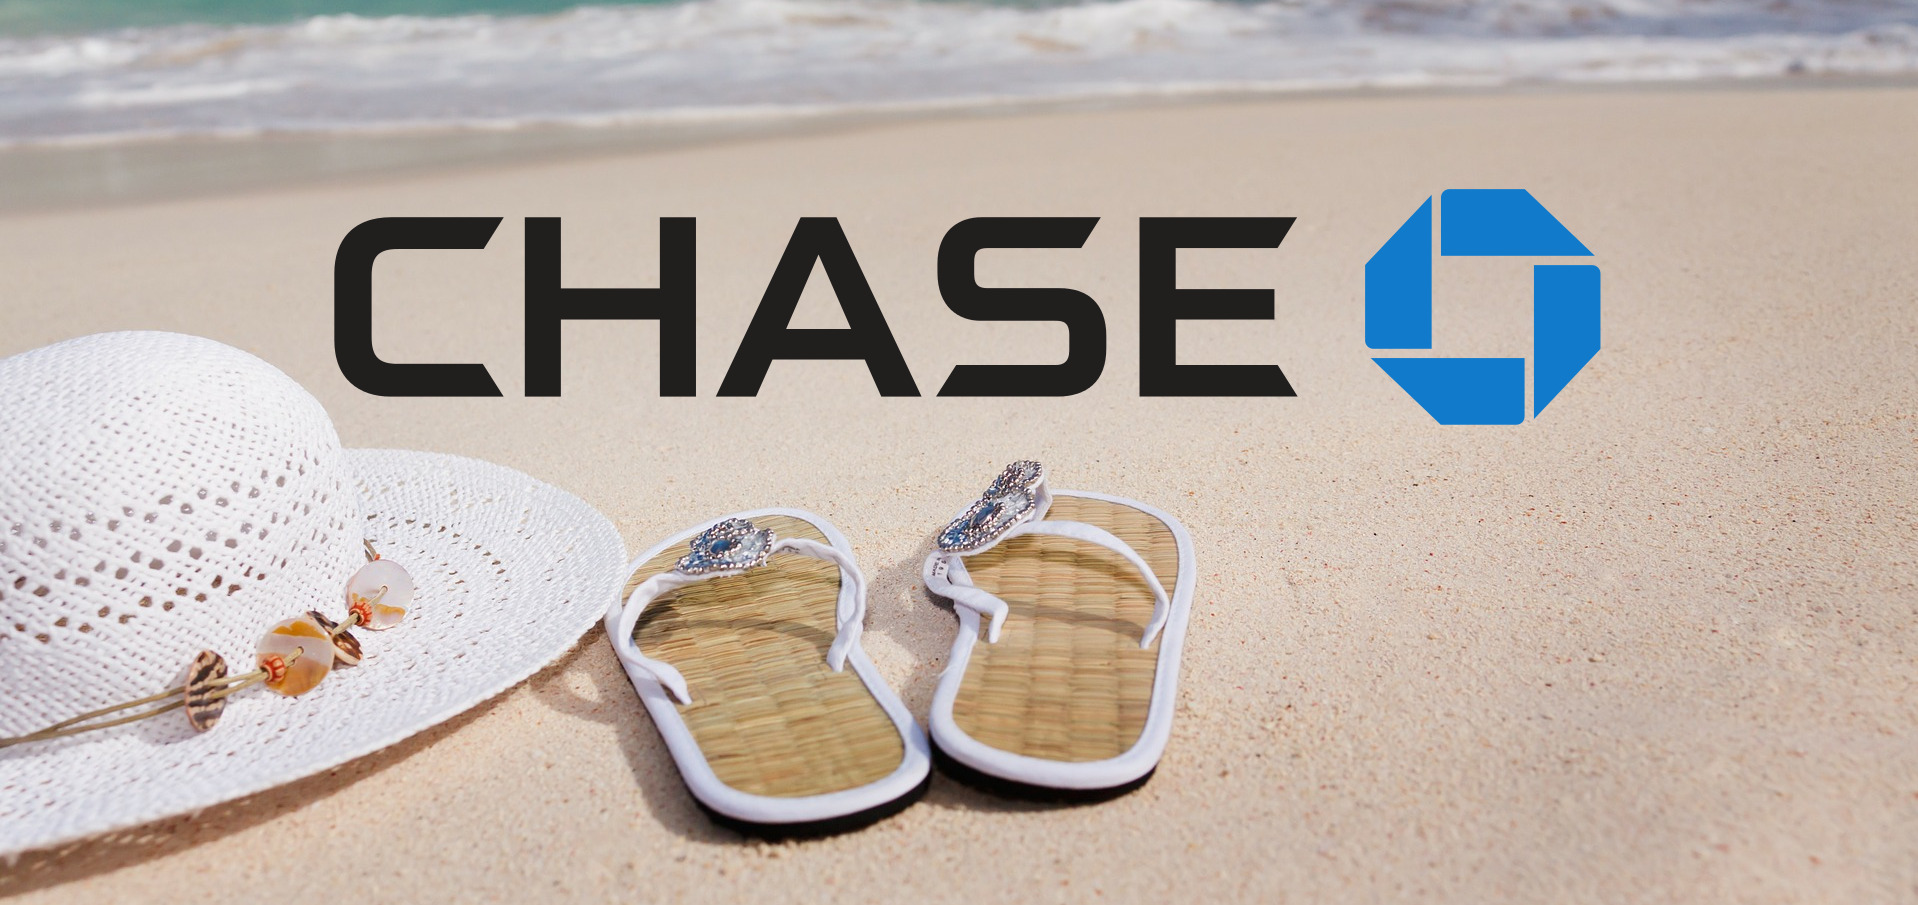 Chase bank holidays for 2017 2018 banks chase bank holidays for 2017 2018 1betcityfo Choice Image